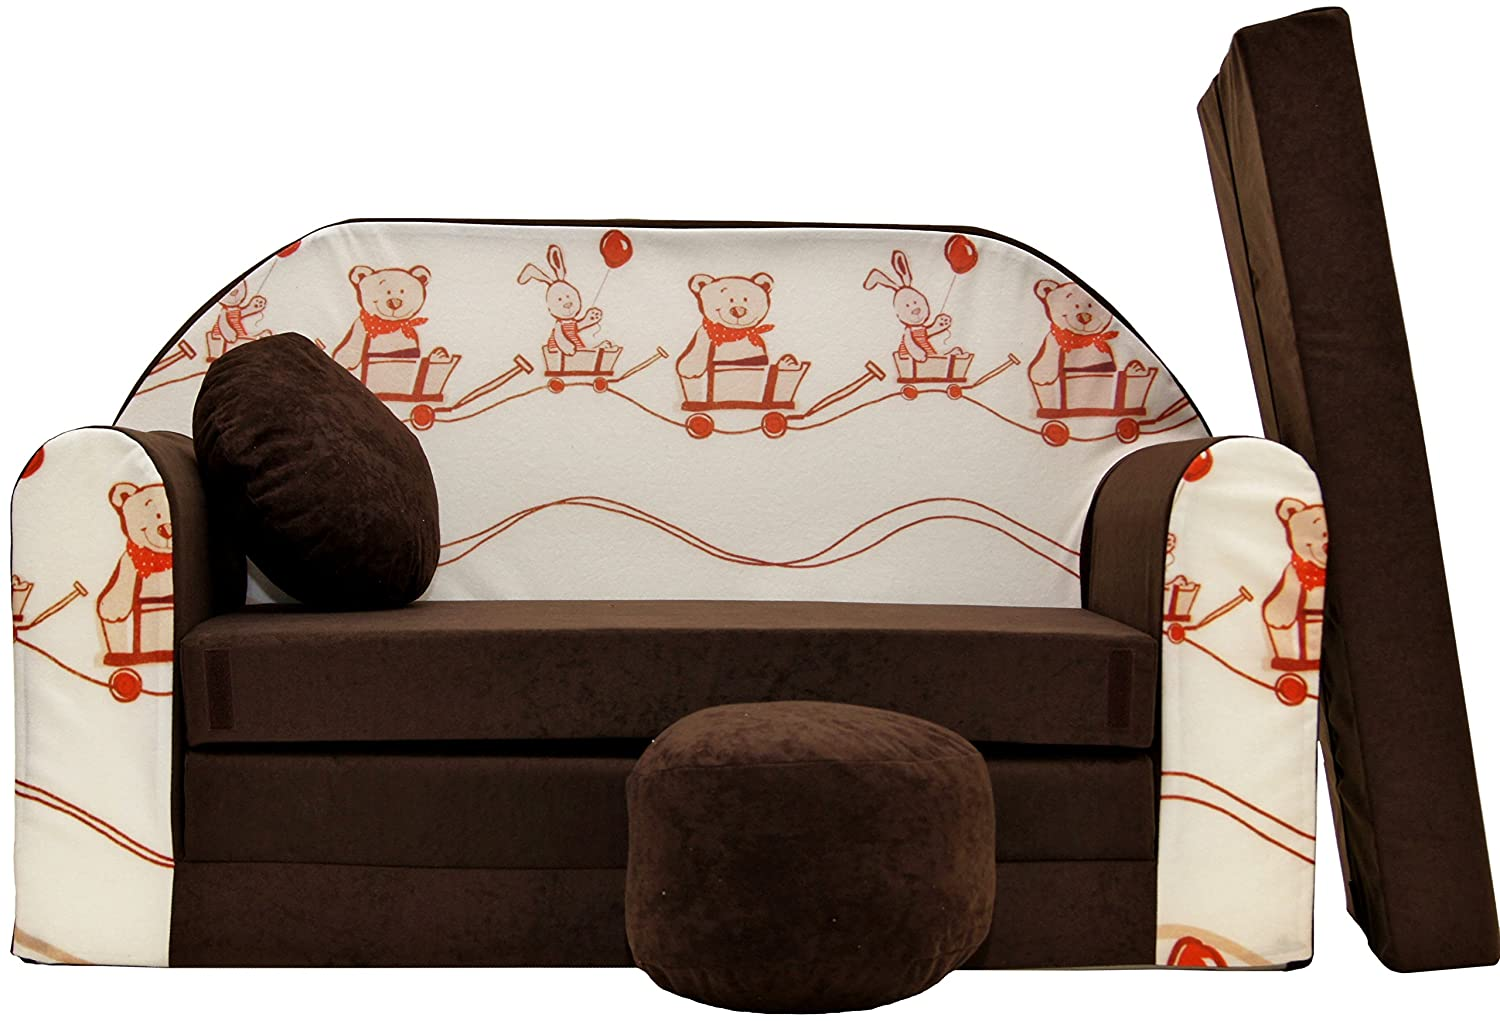 Pro Cosmo K27 Kids Sofa Bed Futon with Pouffe/Footstool/Pillow, Cotton, Brown, 168 x 98 x 60 cm 5902020145189